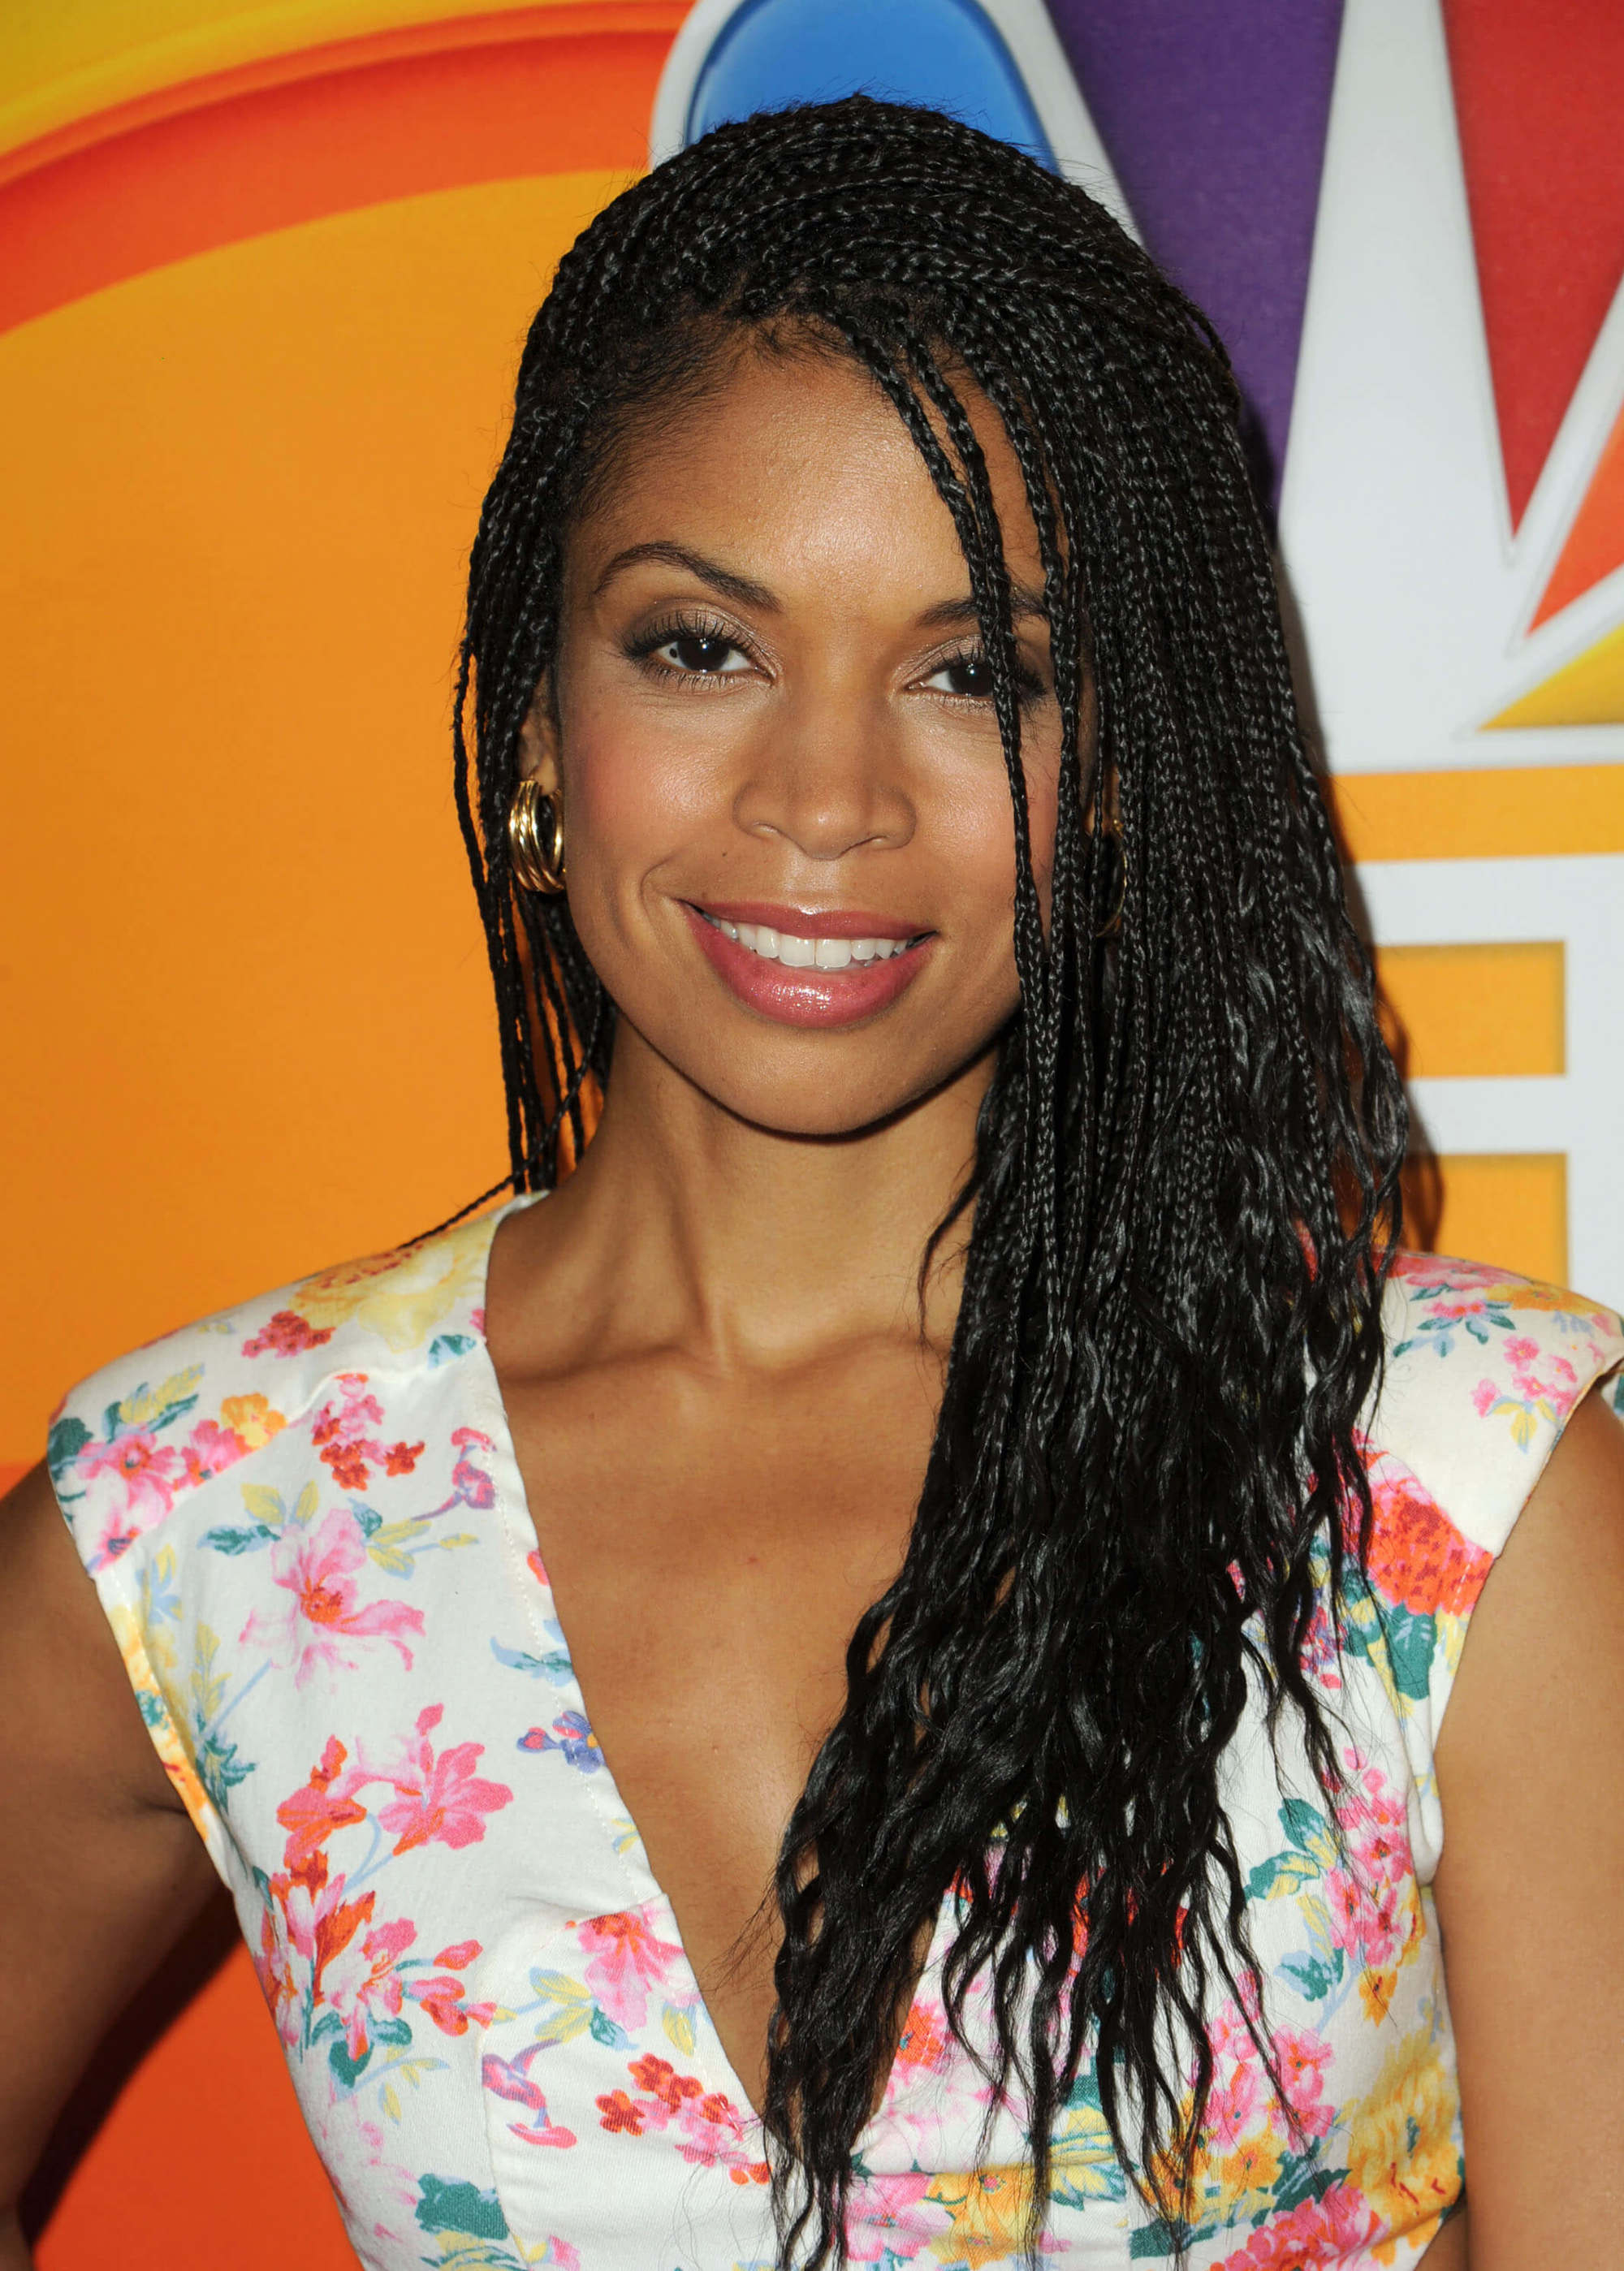 Micro Braids Hairstyles: 7 Celebrity Looks You Have To See Regarding Preferred Micro Braided Hairstyles (View 14 of 20)